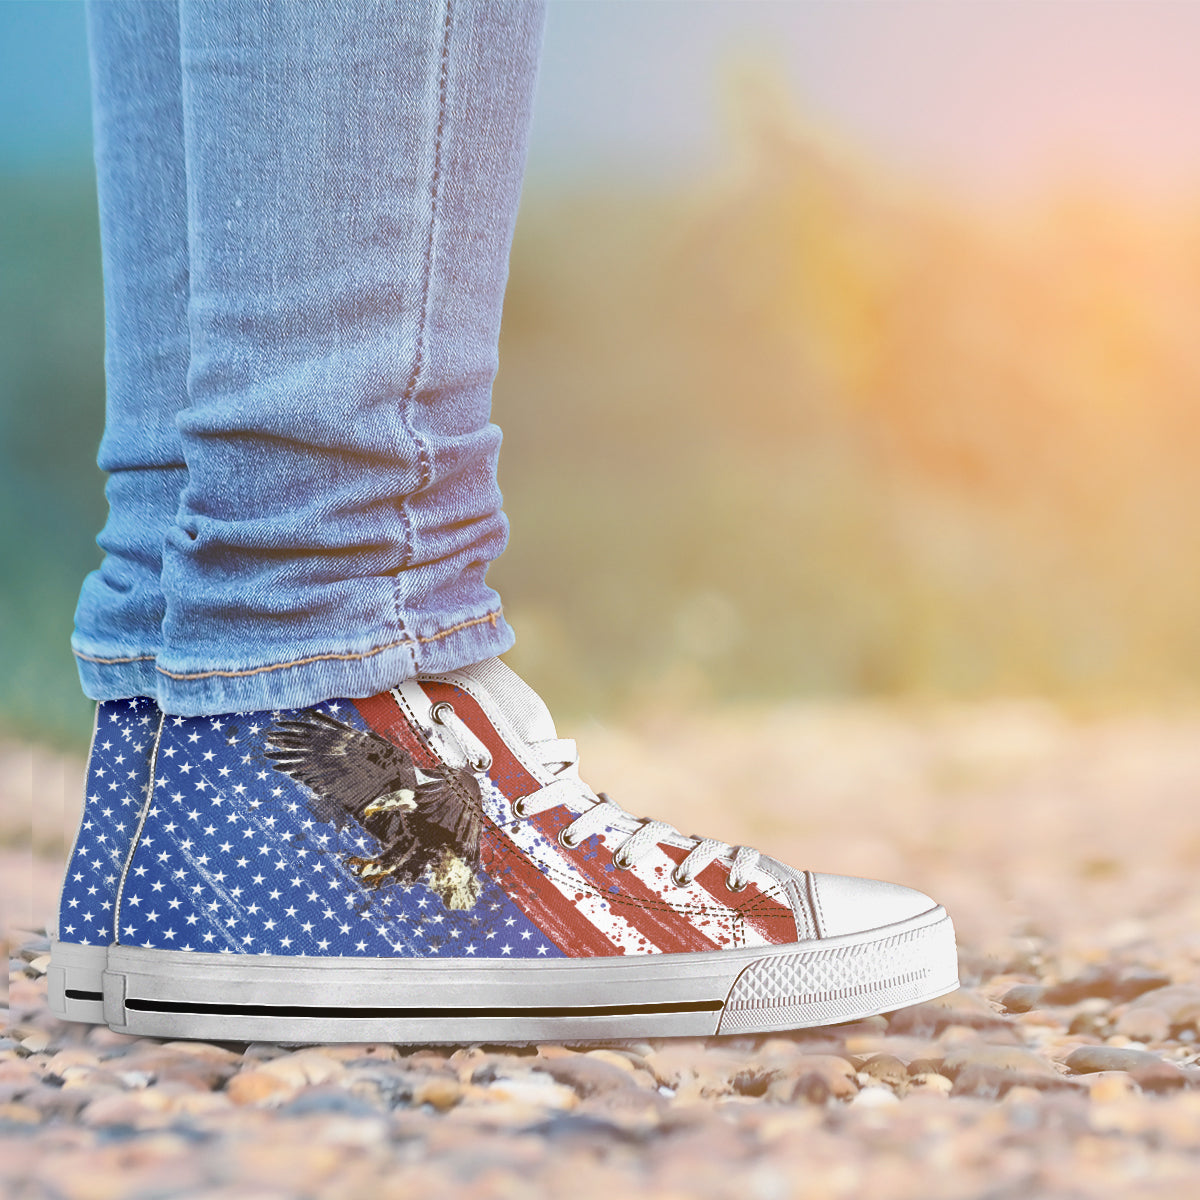 USA Flag & Eagle - Men's High Top Shoes